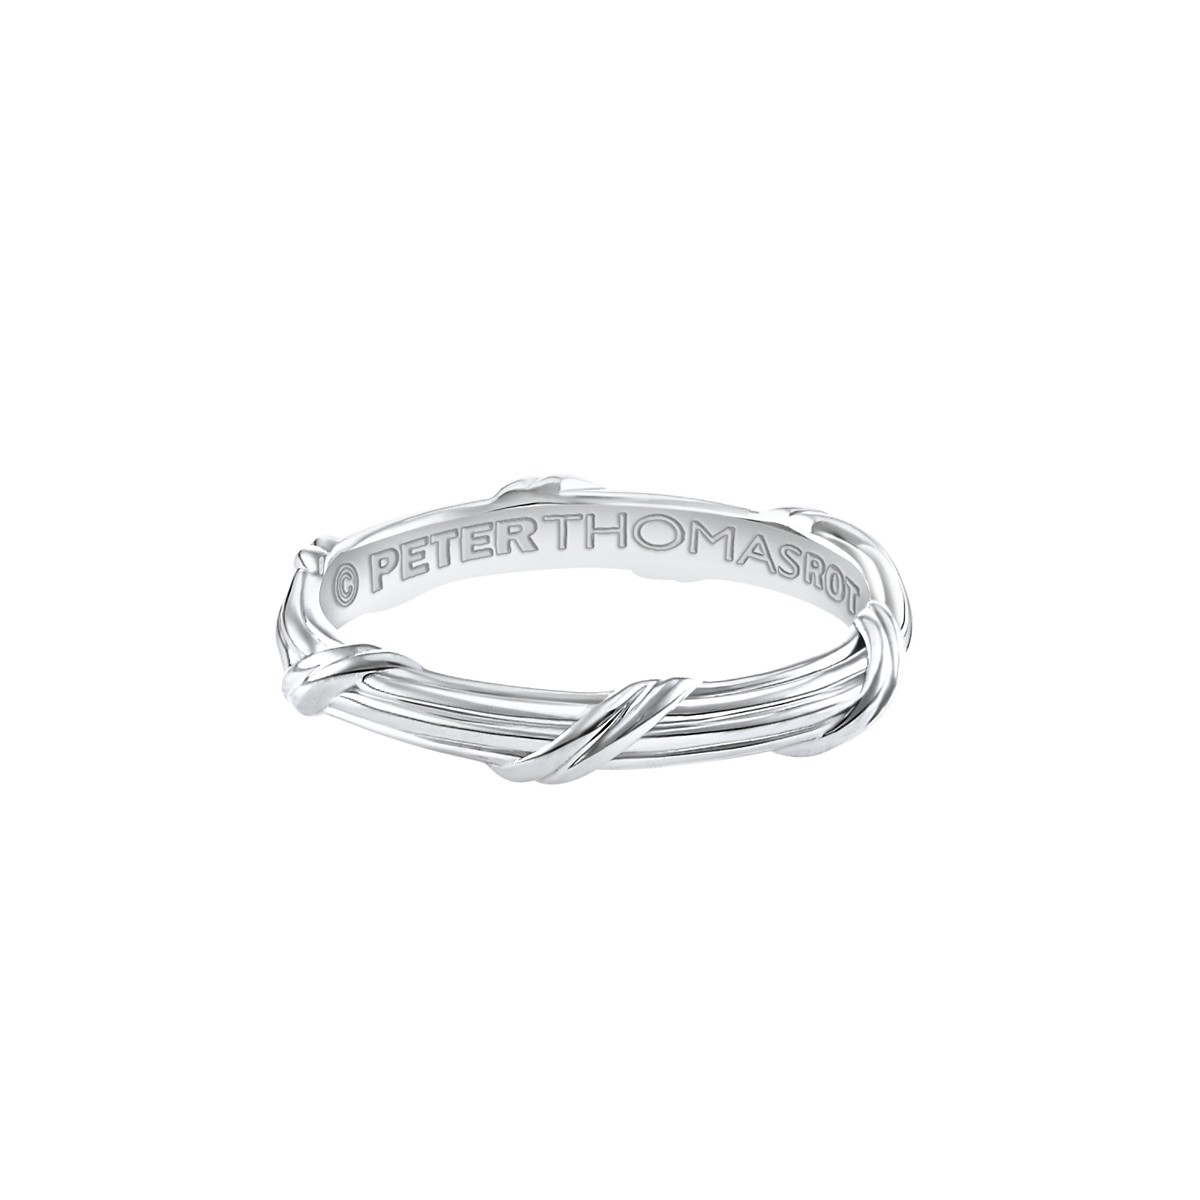 Heritage Eternity Band in 18K white gold 3 mm Sizes 4 - 9